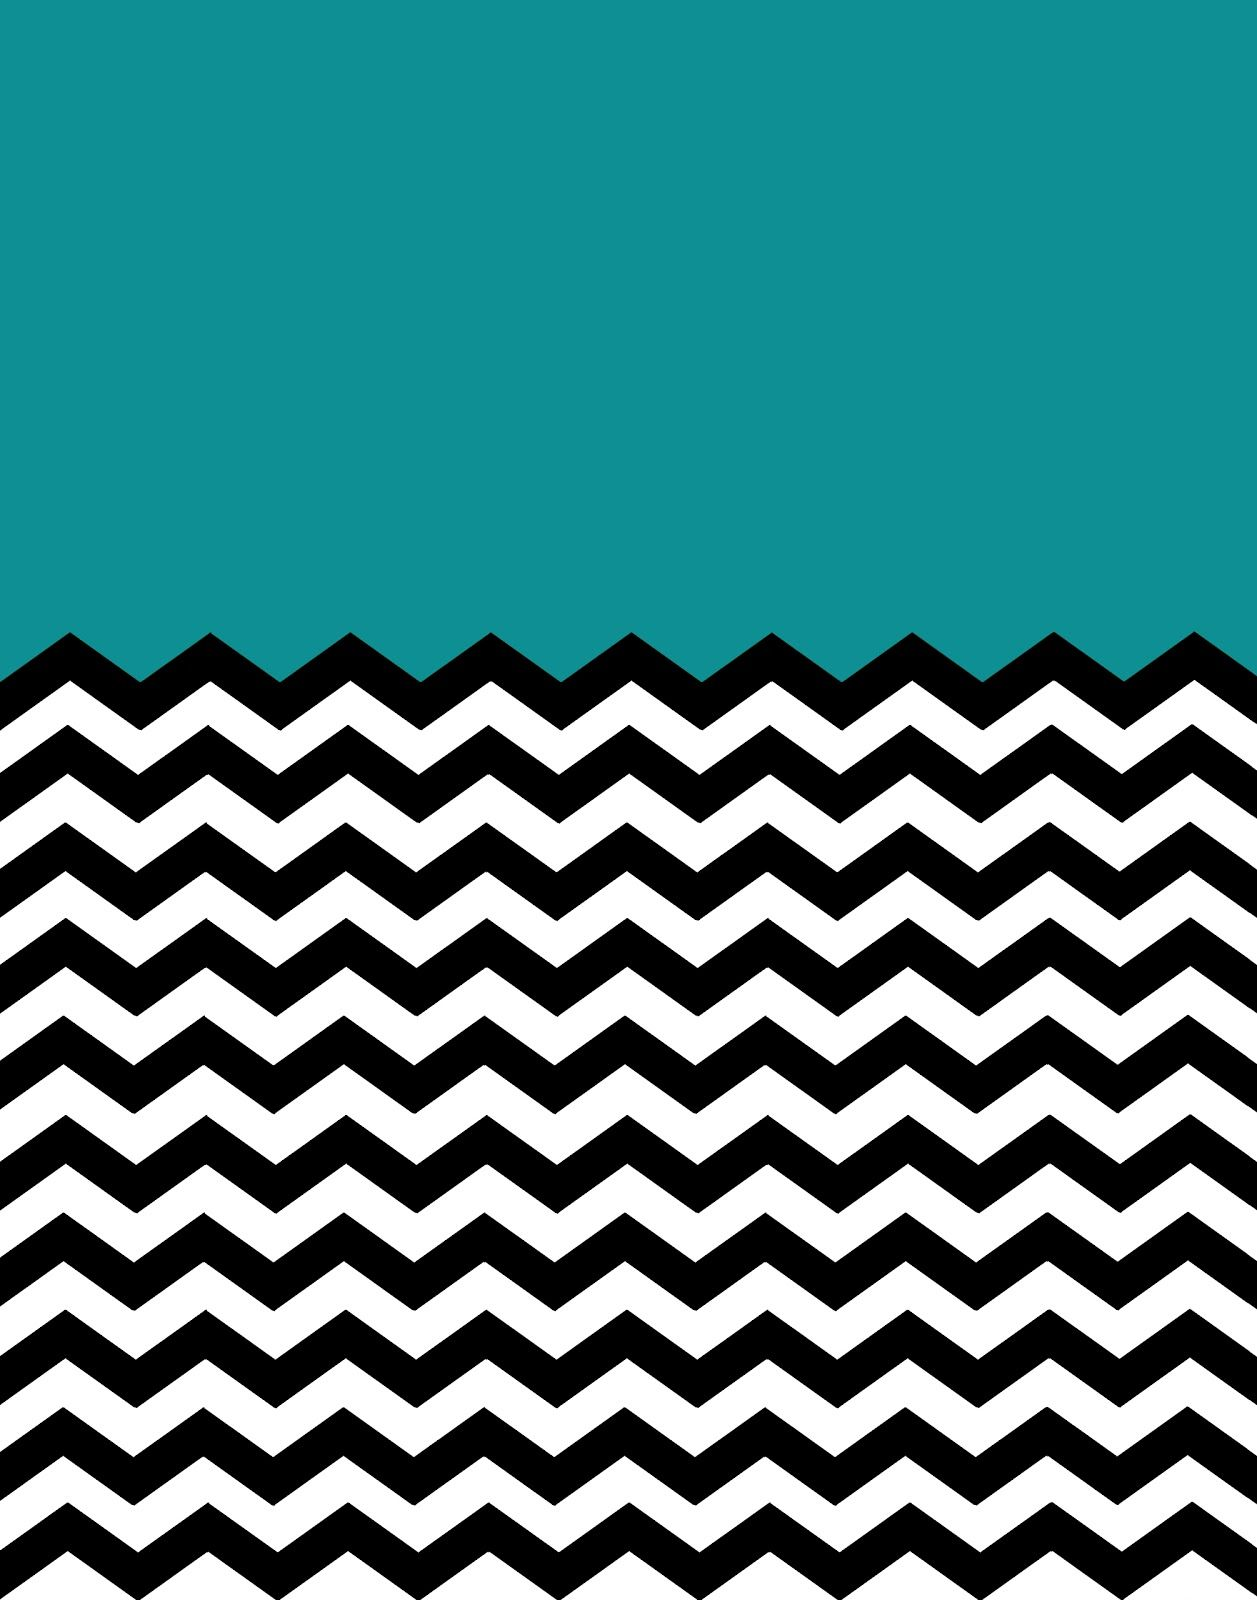 Doodlecraft: Freebie 5: Colorblock Chevron Backgrounds!